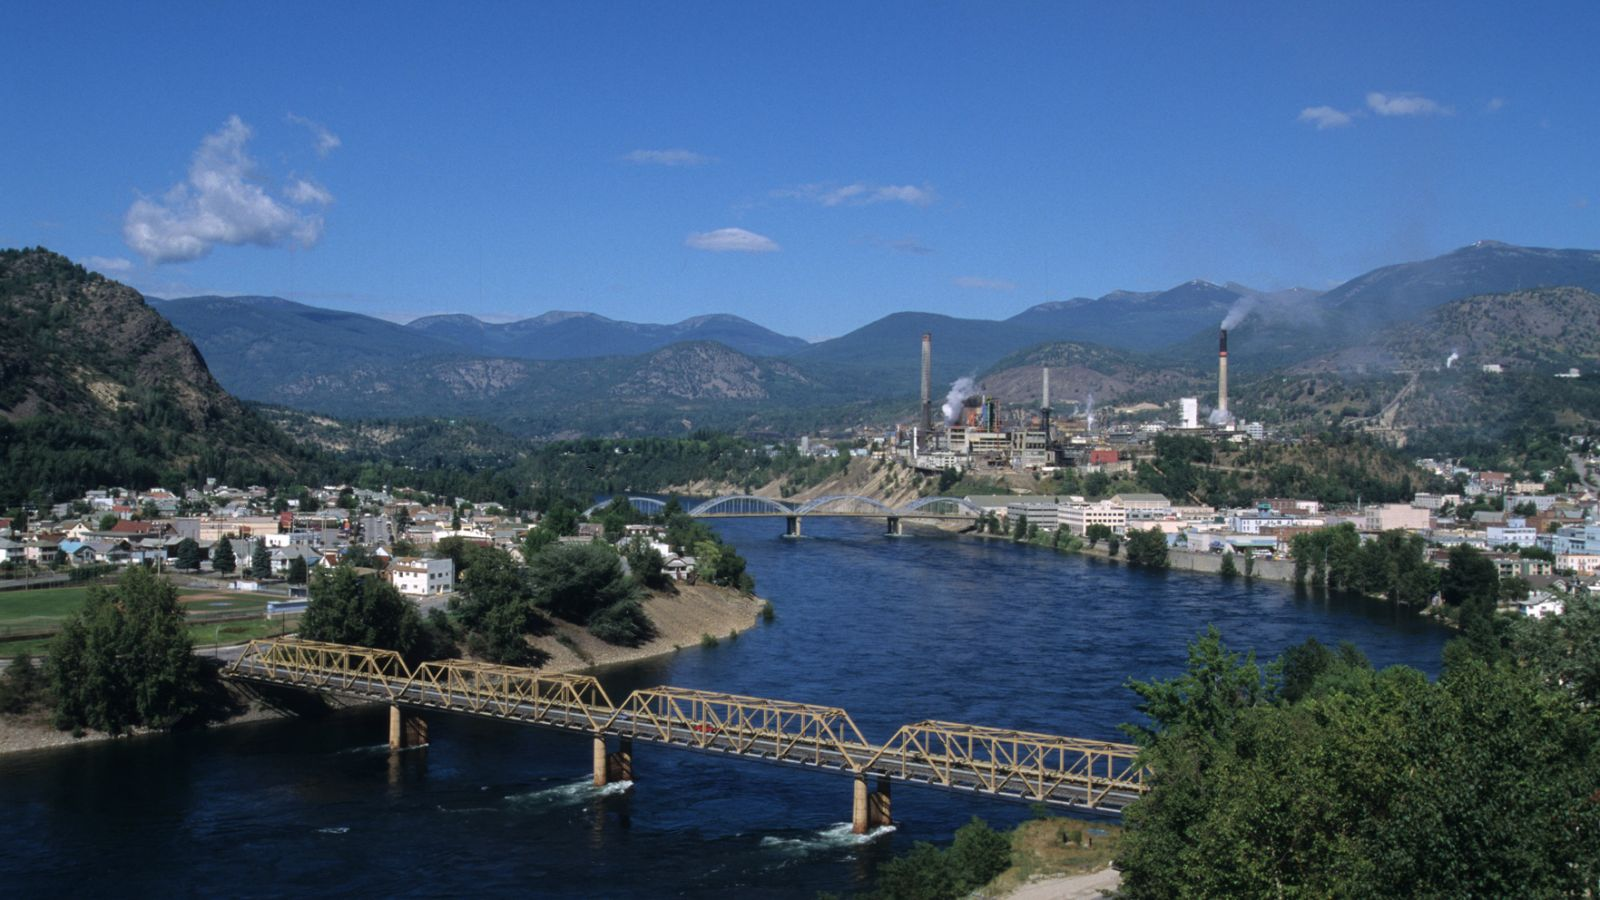 The city of Trail and the Columbia River from above.